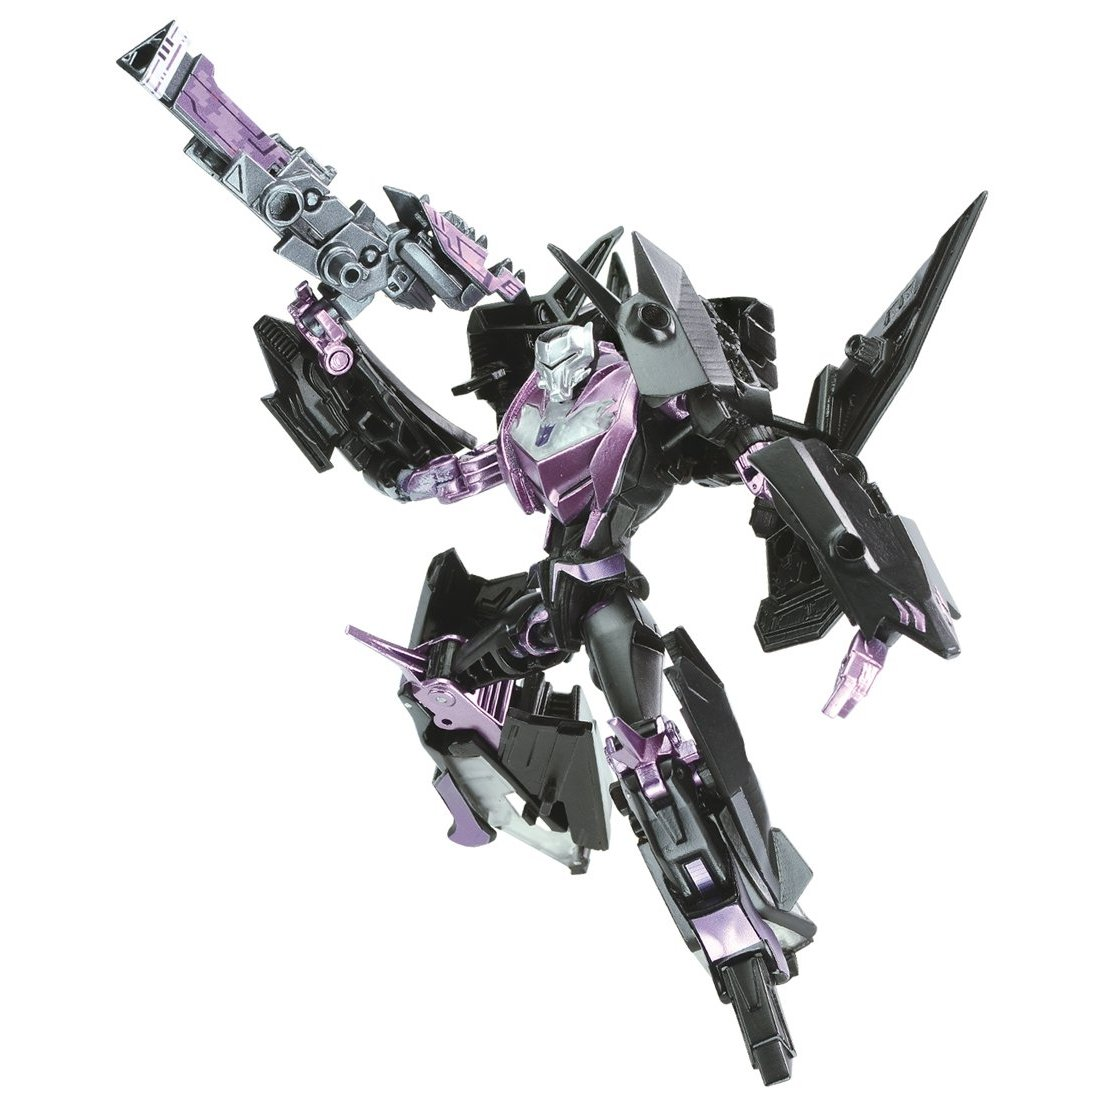 Vehicon (Jet) with Igu Image